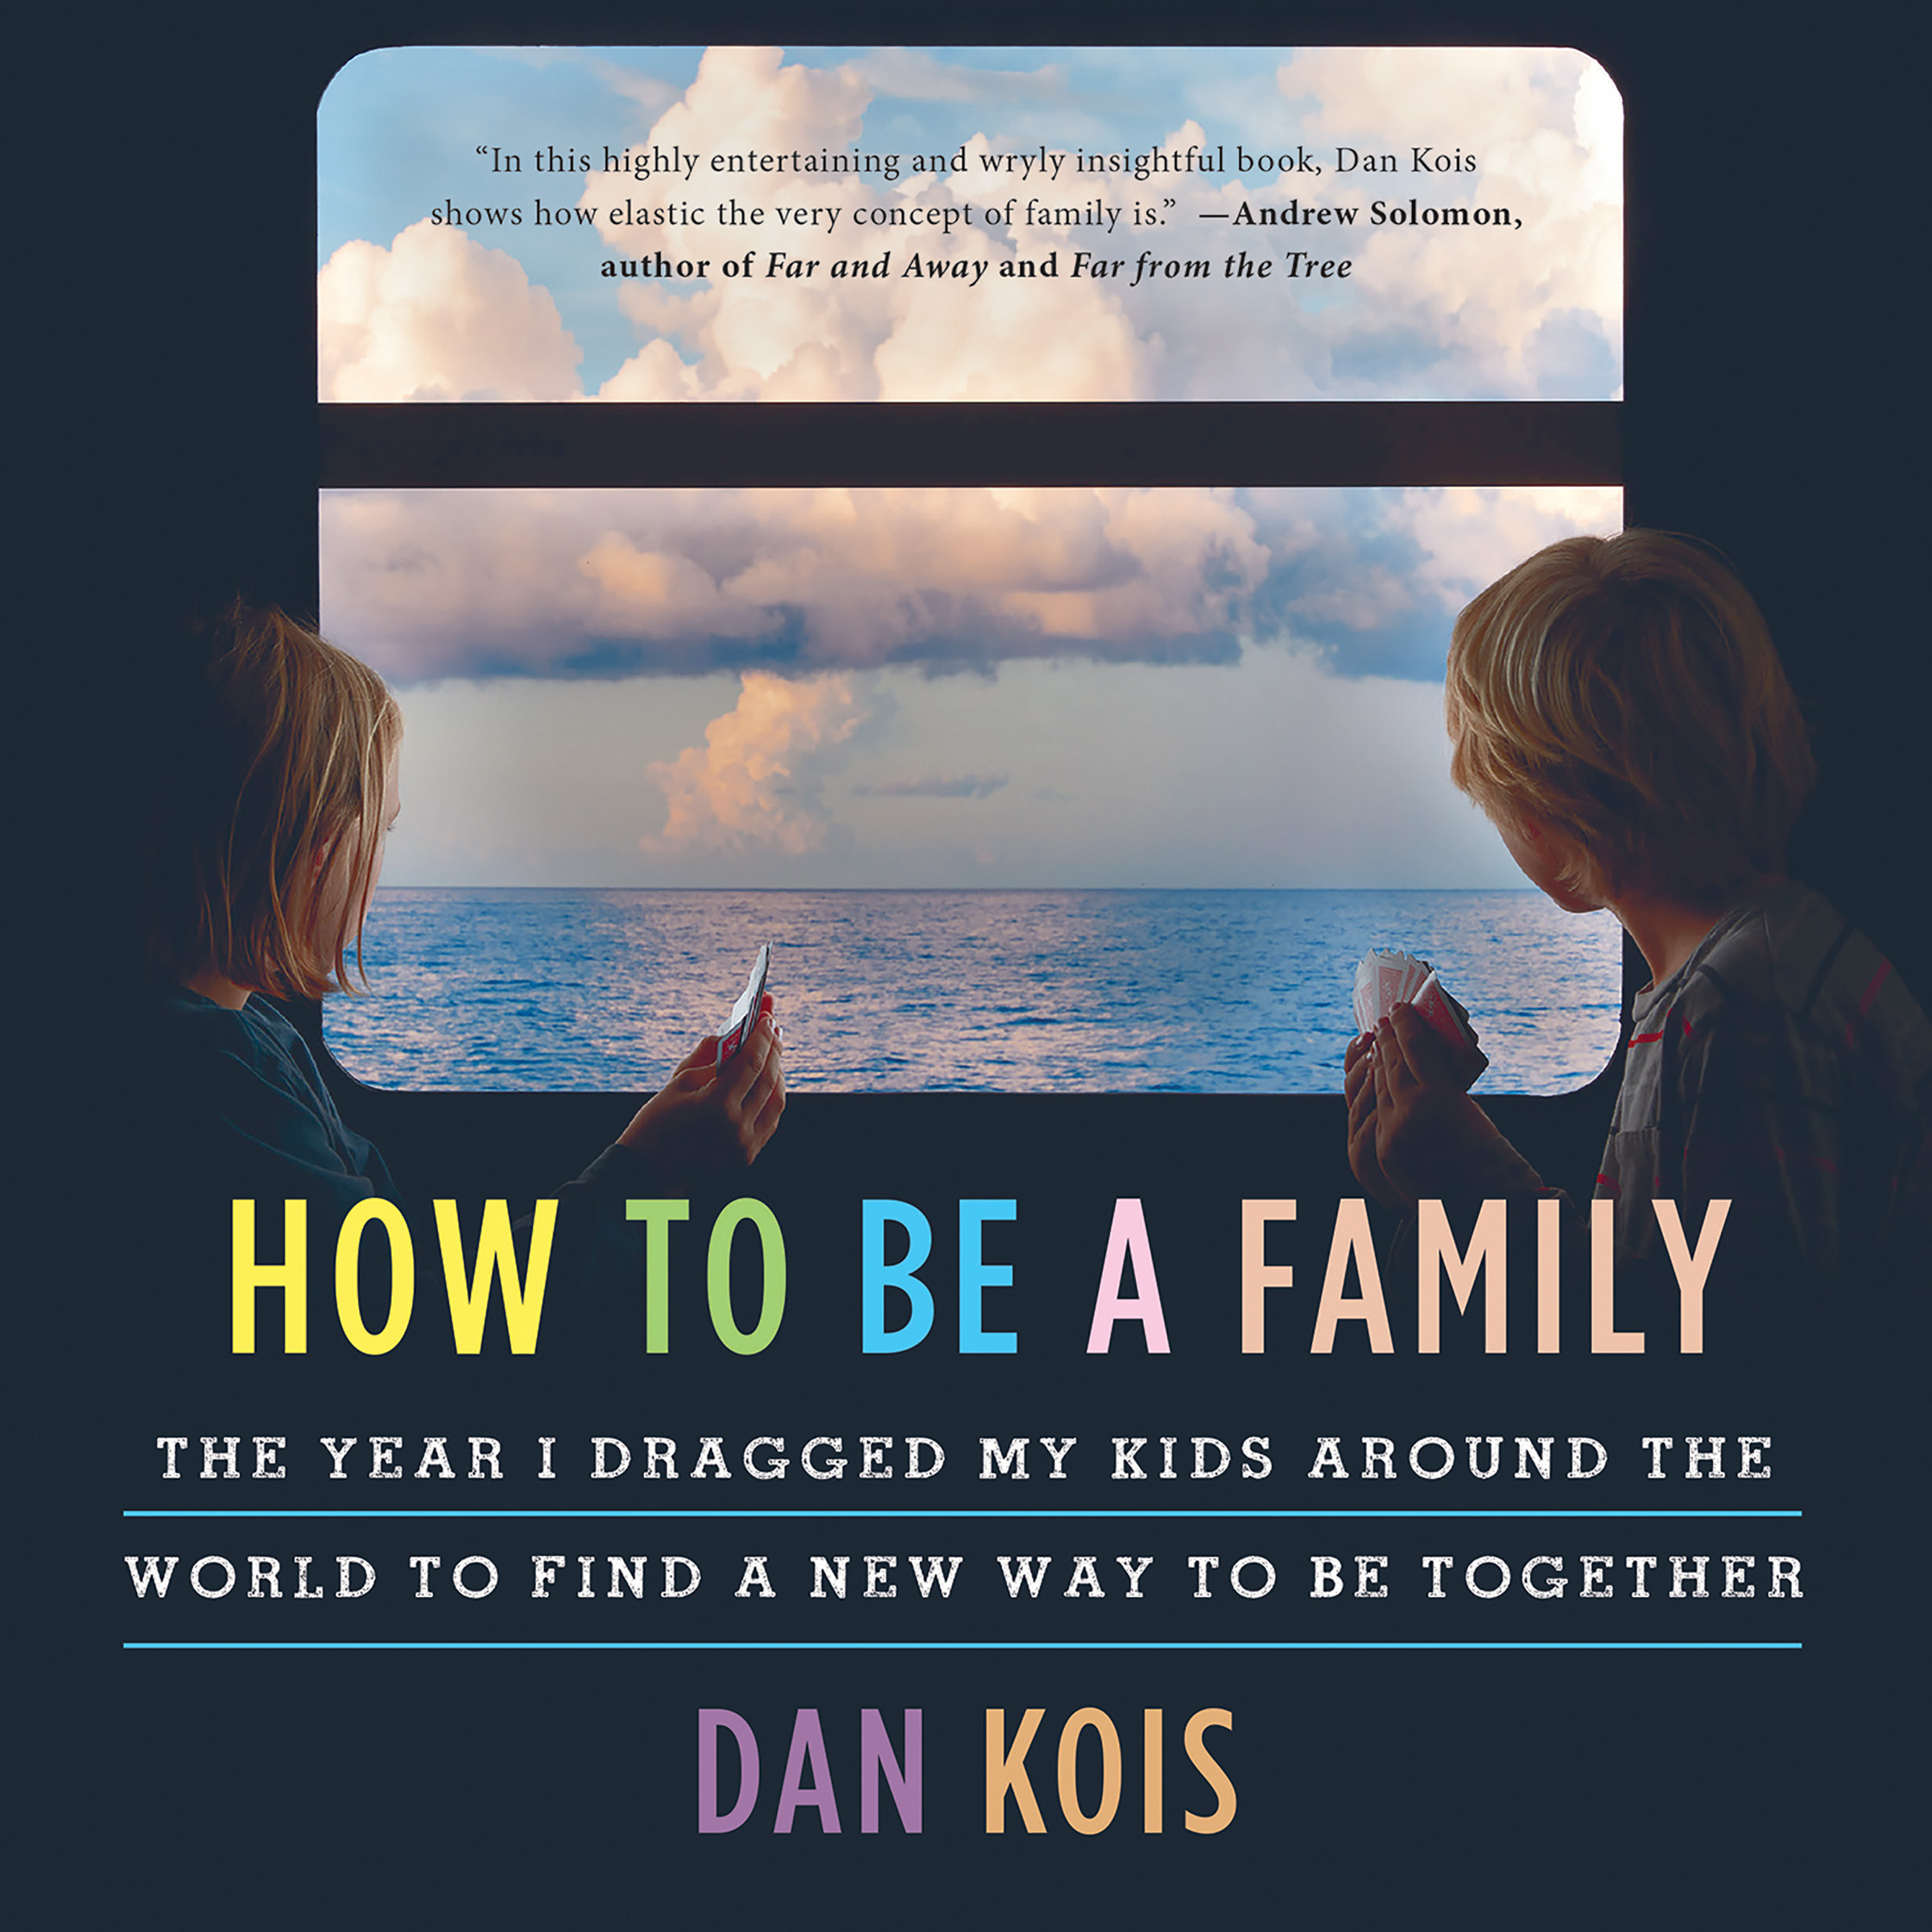 image for How to Be a Family: The Year I Dragged My Kids Around the World to Find a New Way to Be Together